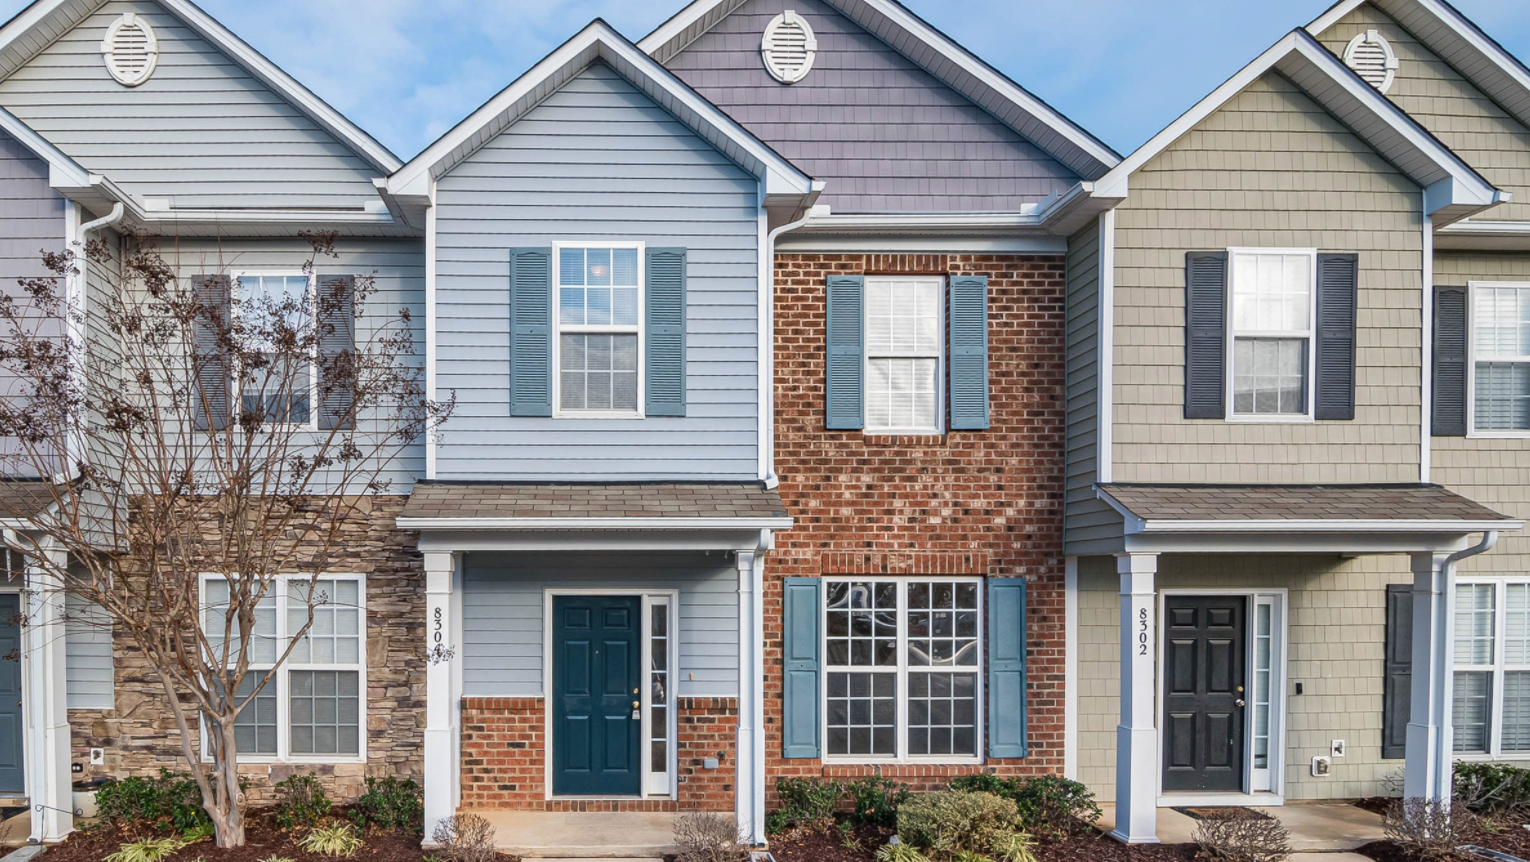 Townhouse with blue siding and brick accent.